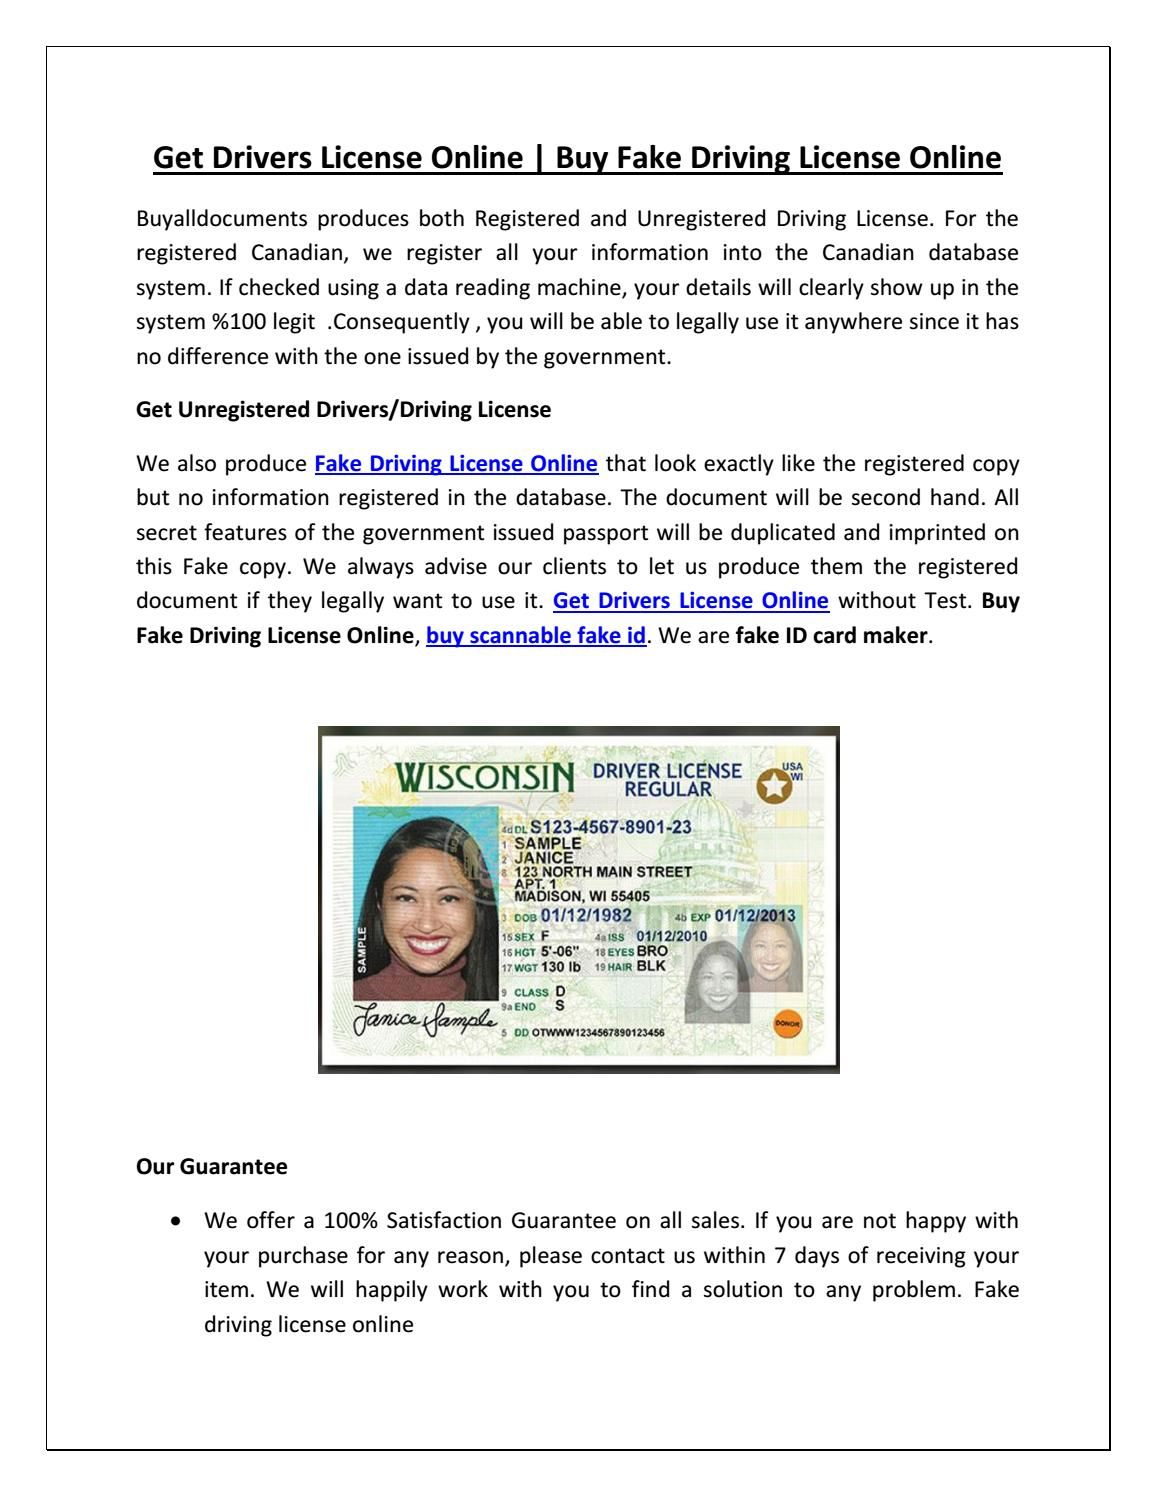 Get Drivers License Online Driving license, Drivers